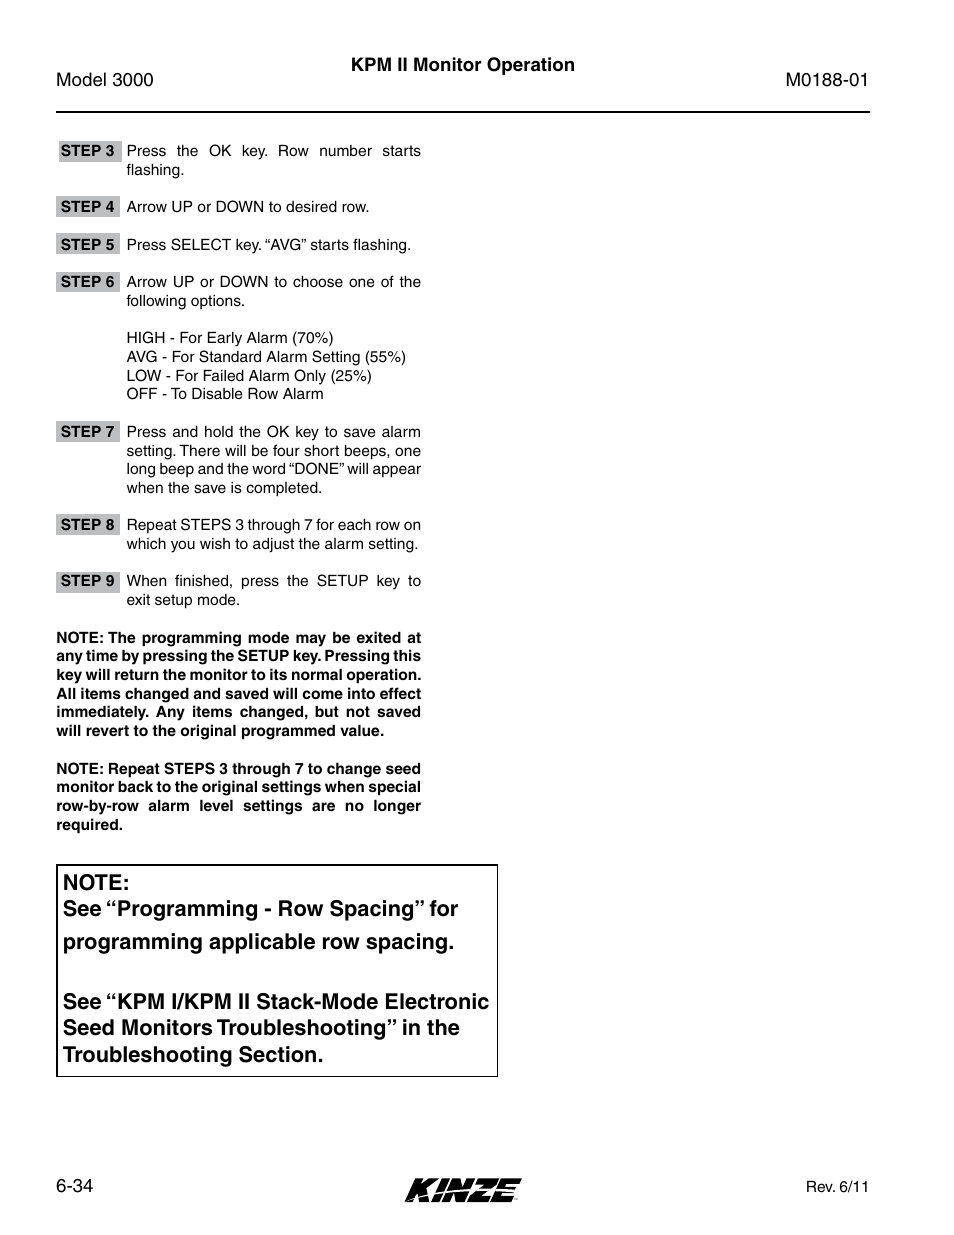 manual for kinze 3000 monitor user guide manual that easy to read u2022 rh 6geek co Kinze 3500 8 Row Planters Kinze 3600